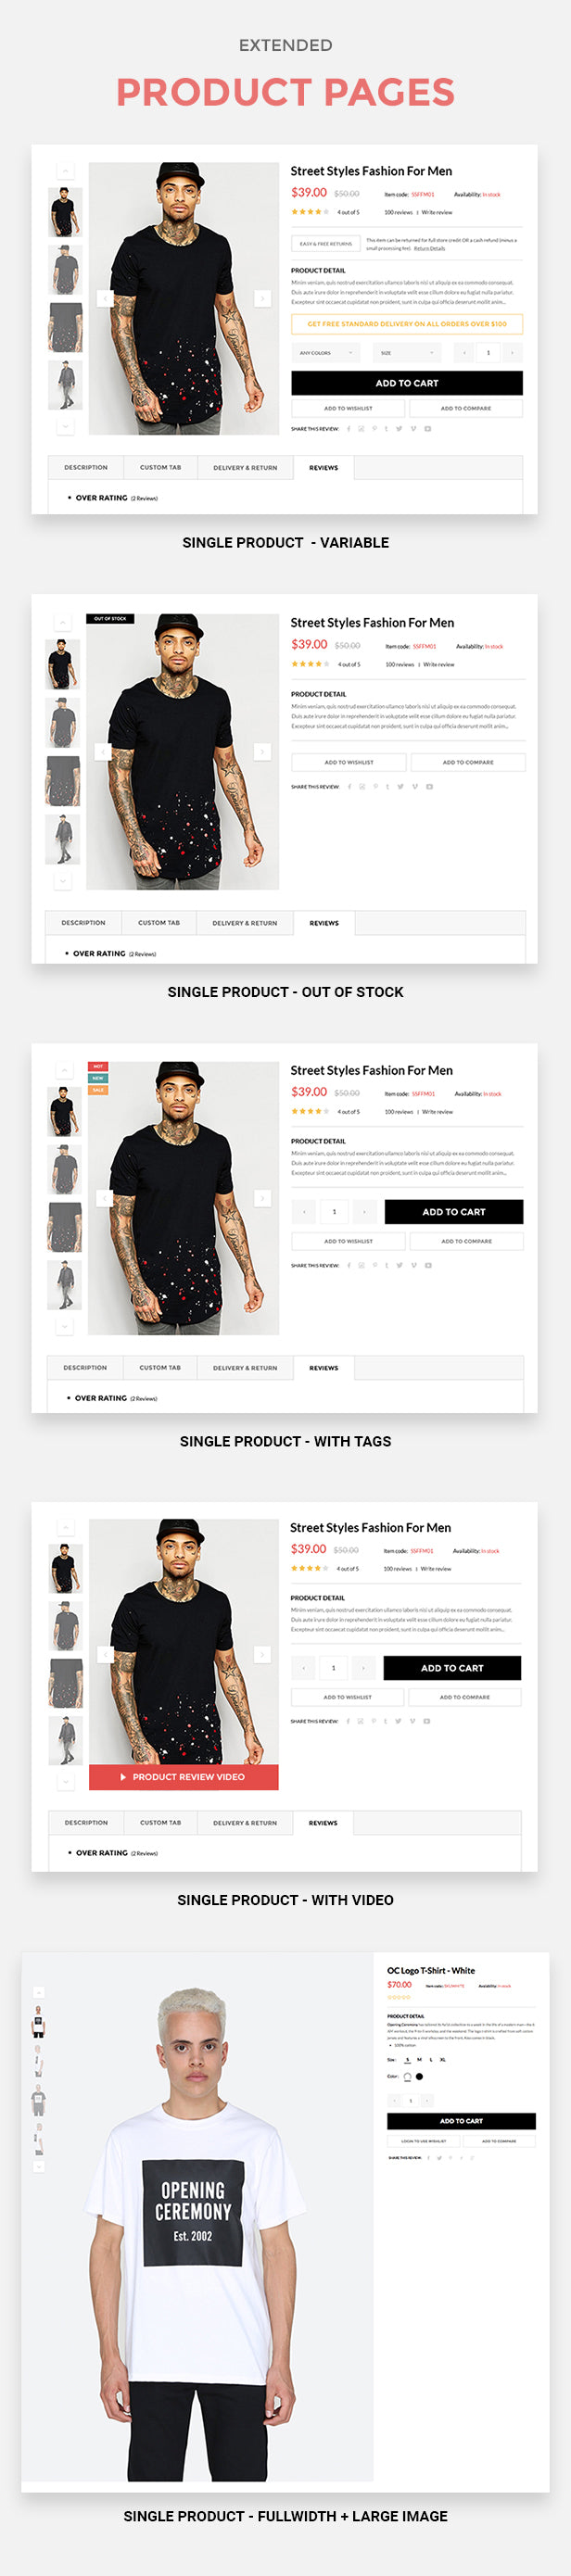 Vision - Clean DRAG and DROP Fashion, Digital Shopify Theme